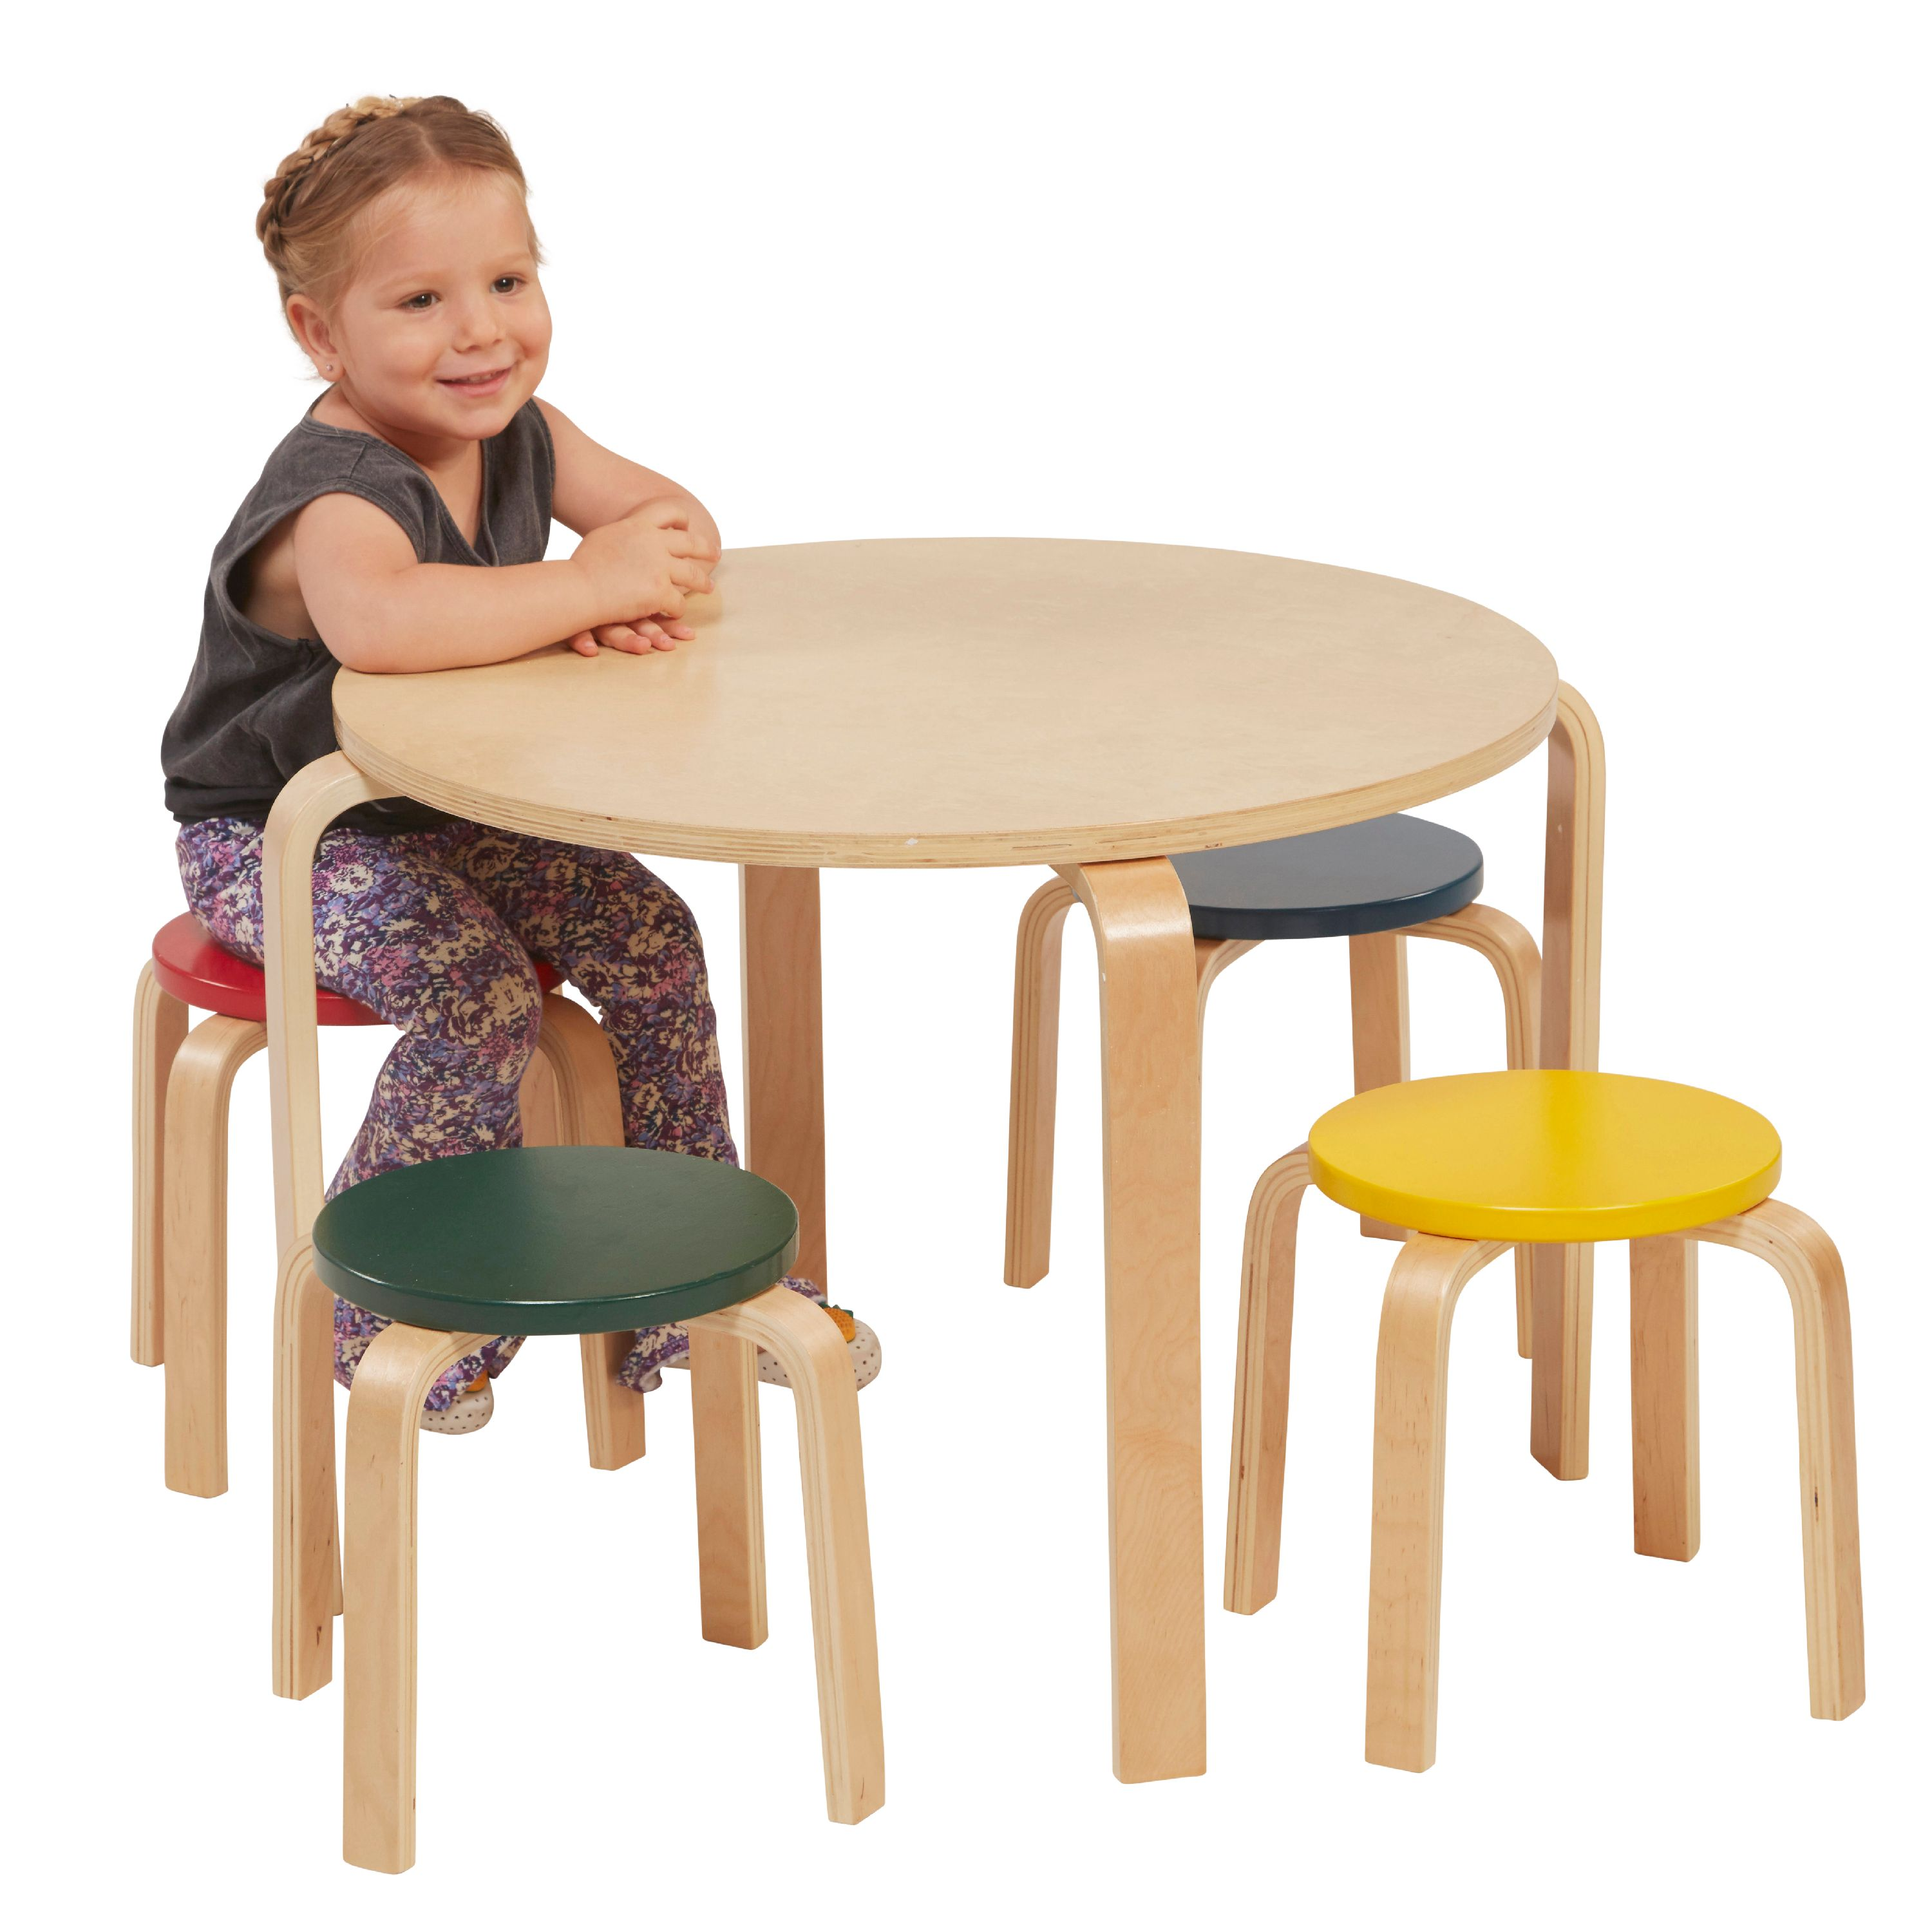 ECR4Kids Bentwood Table and Stools Set, Assorted Colors